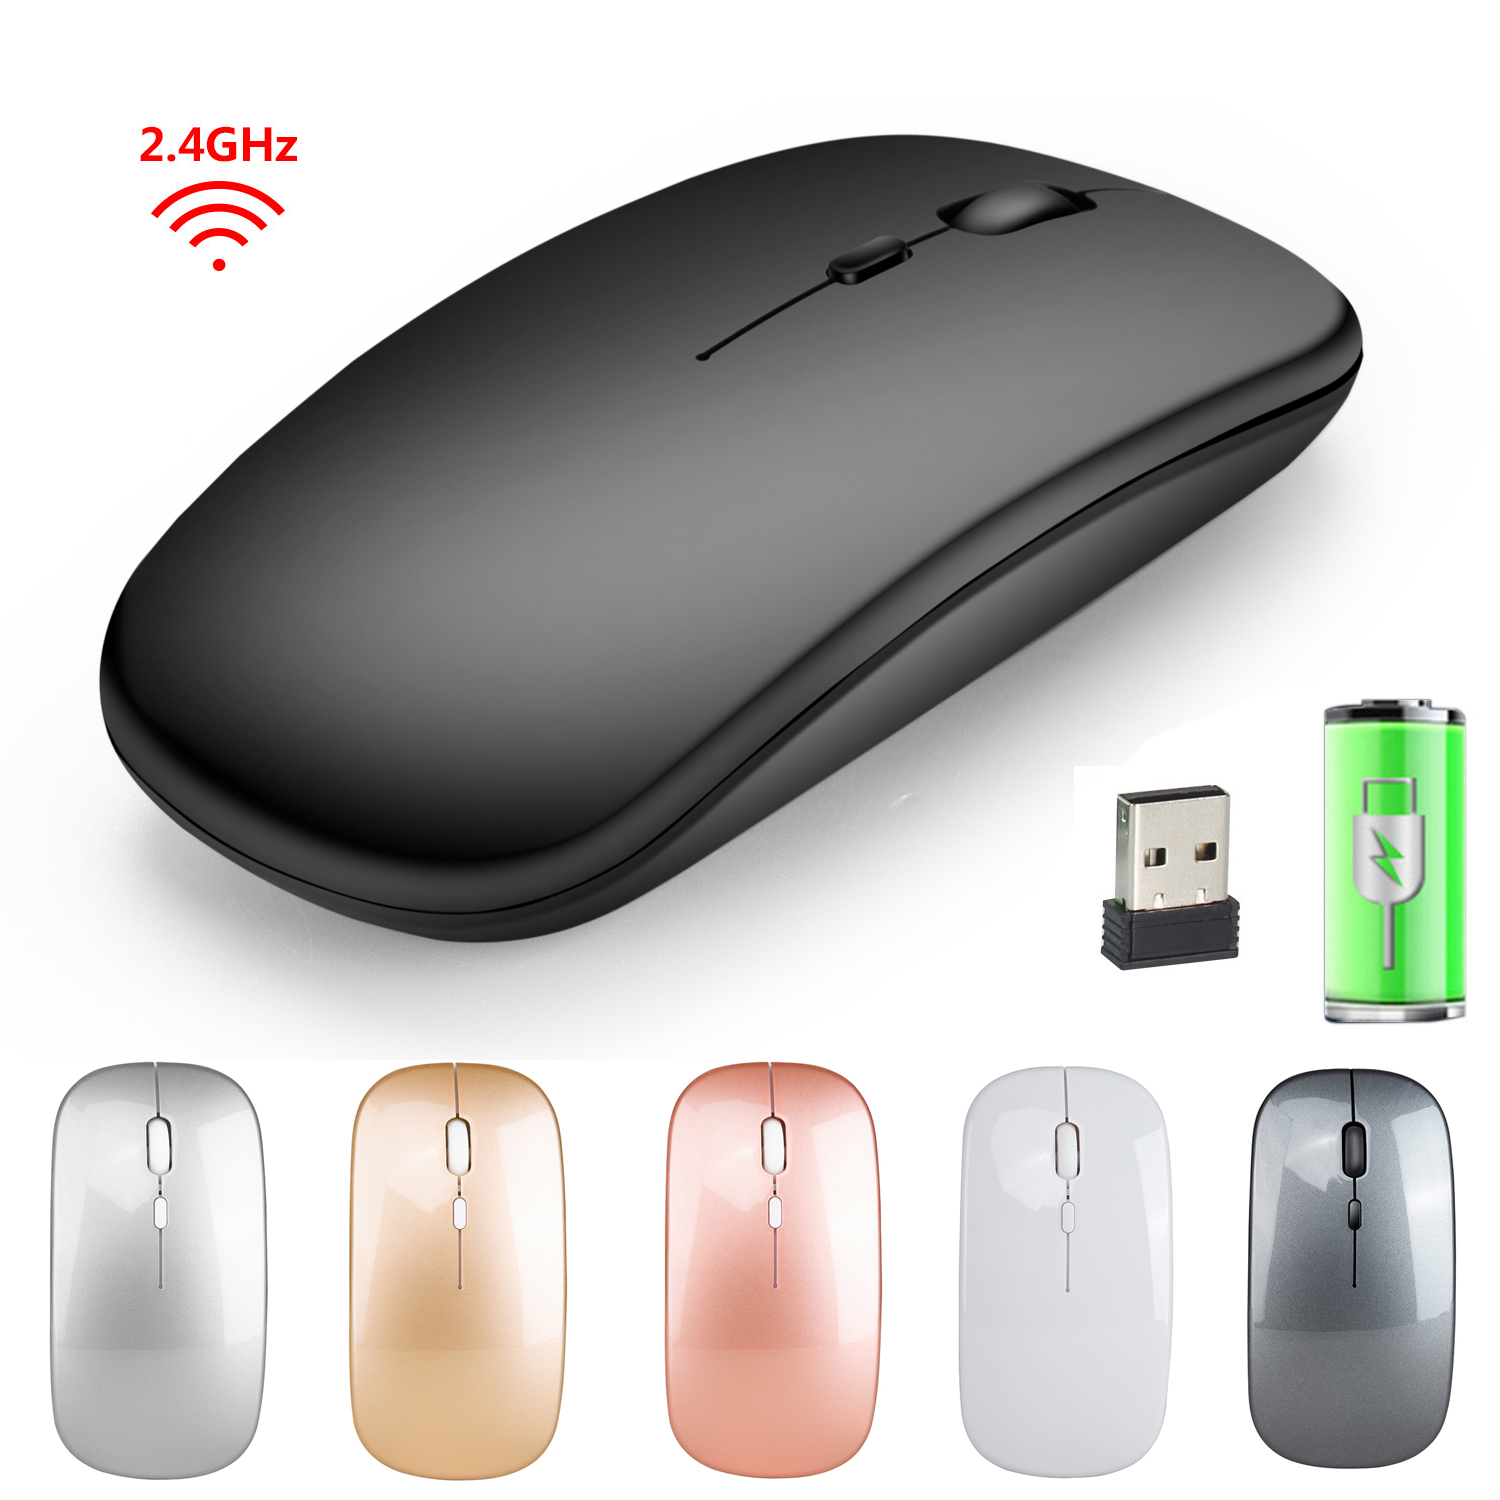 2.4G Bluetooth Mouse Wireless 1600DPI USB Rechargeable Mouse Slim Quiet 3 Button Ergonomics Optical Office Mouse For PC Computer